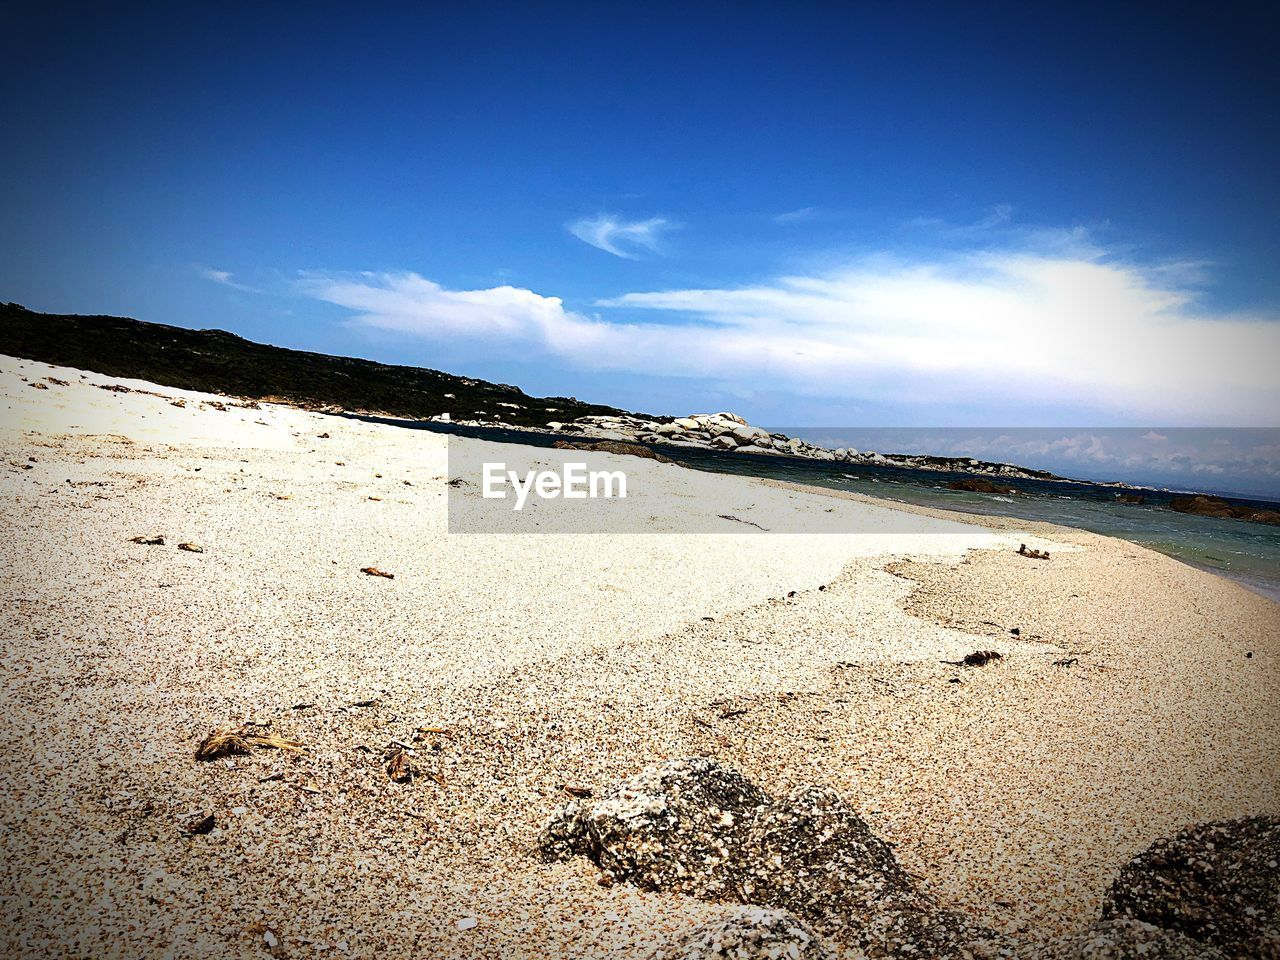 sky, land, beach, tranquility, cloud - sky, tranquil scene, beauty in nature, scenics - nature, sand, nature, sea, water, day, no people, non-urban scene, outdoors, blue, sunlight, idyllic